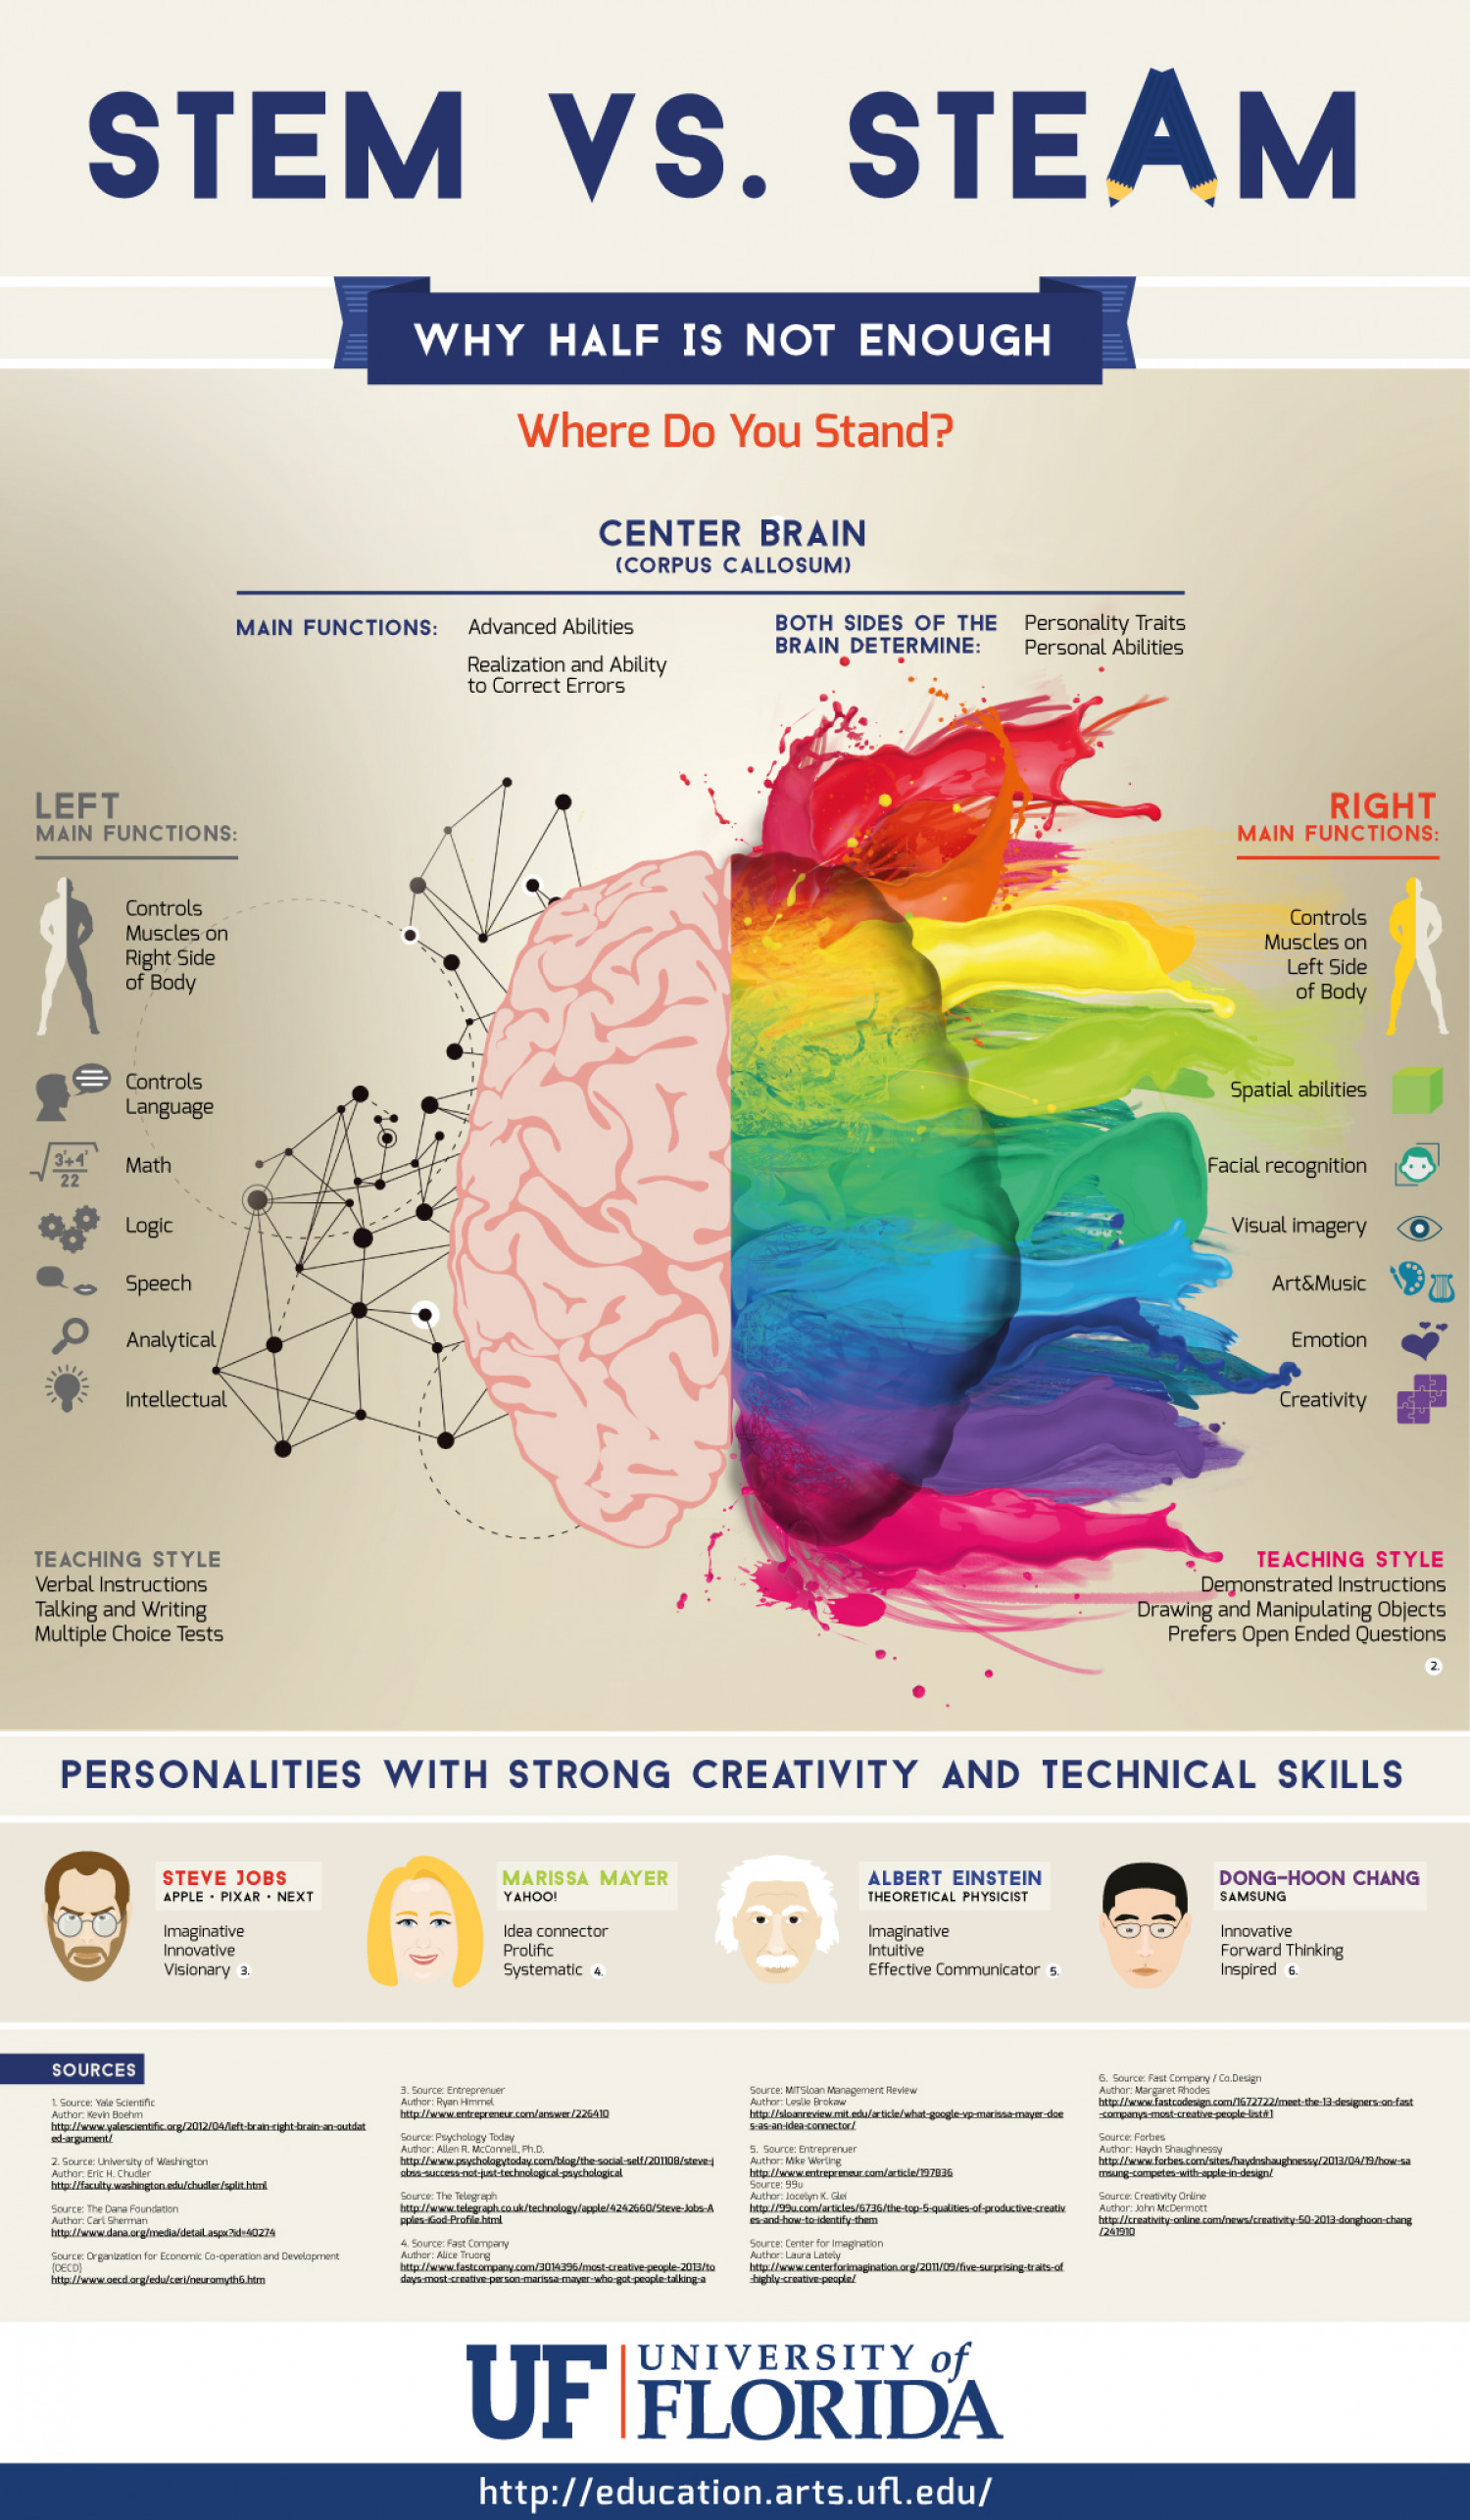 STEM vs STEAM - Why Half a Brain Isn't Enough Infographic